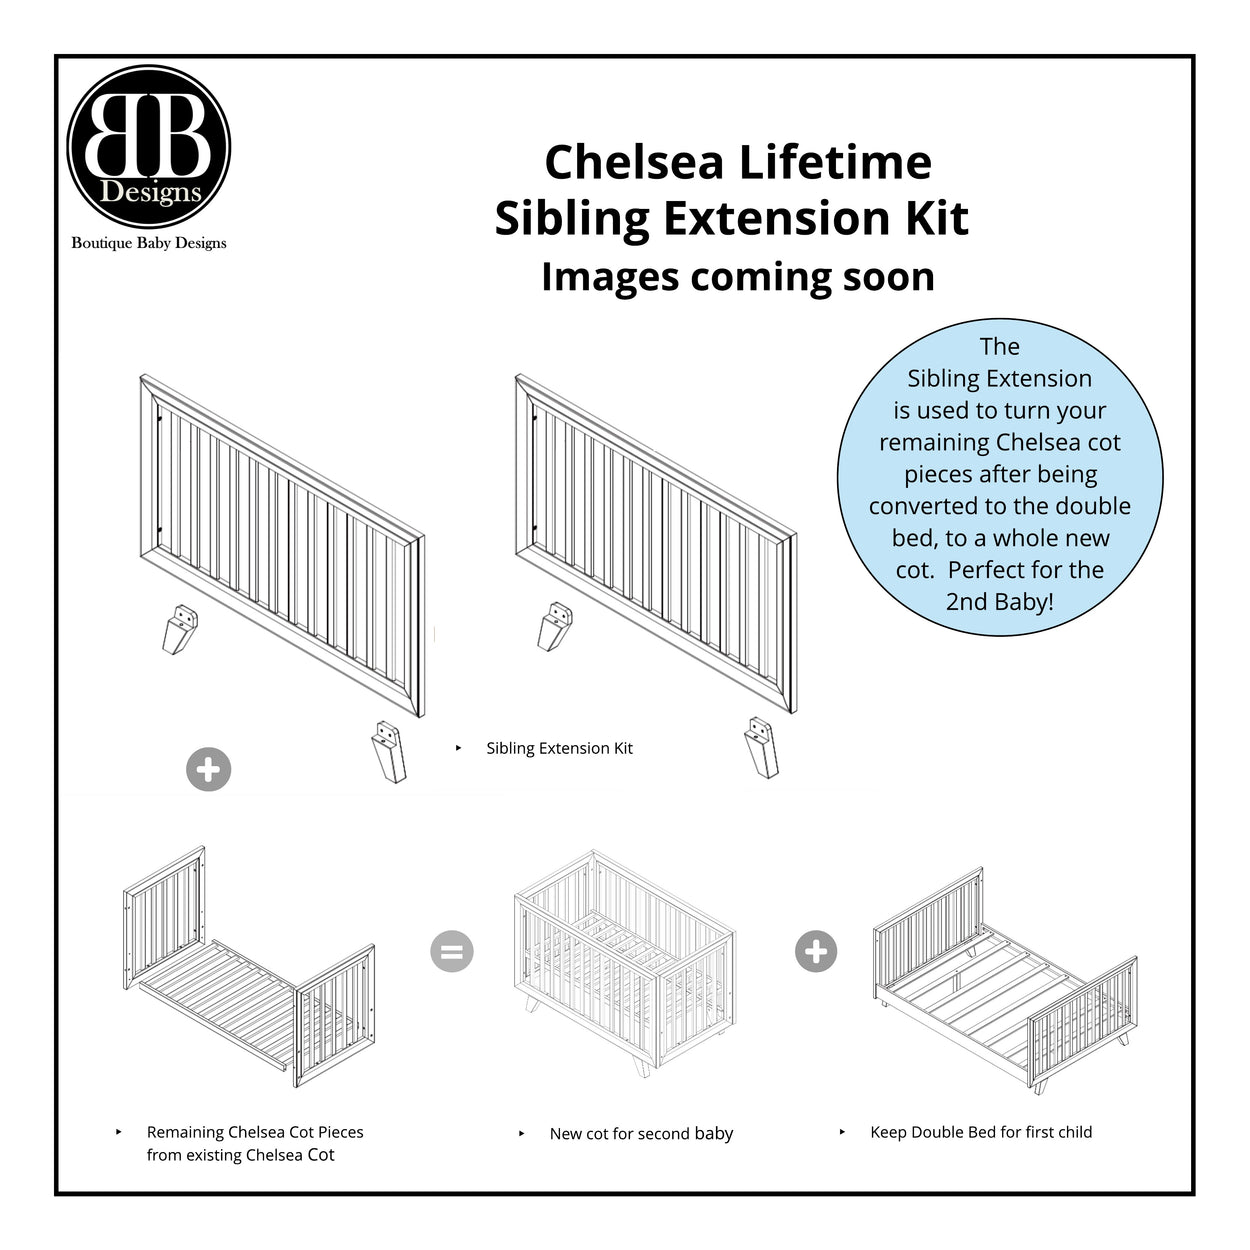 Chelsea Lifetime Sibling Extension Kit